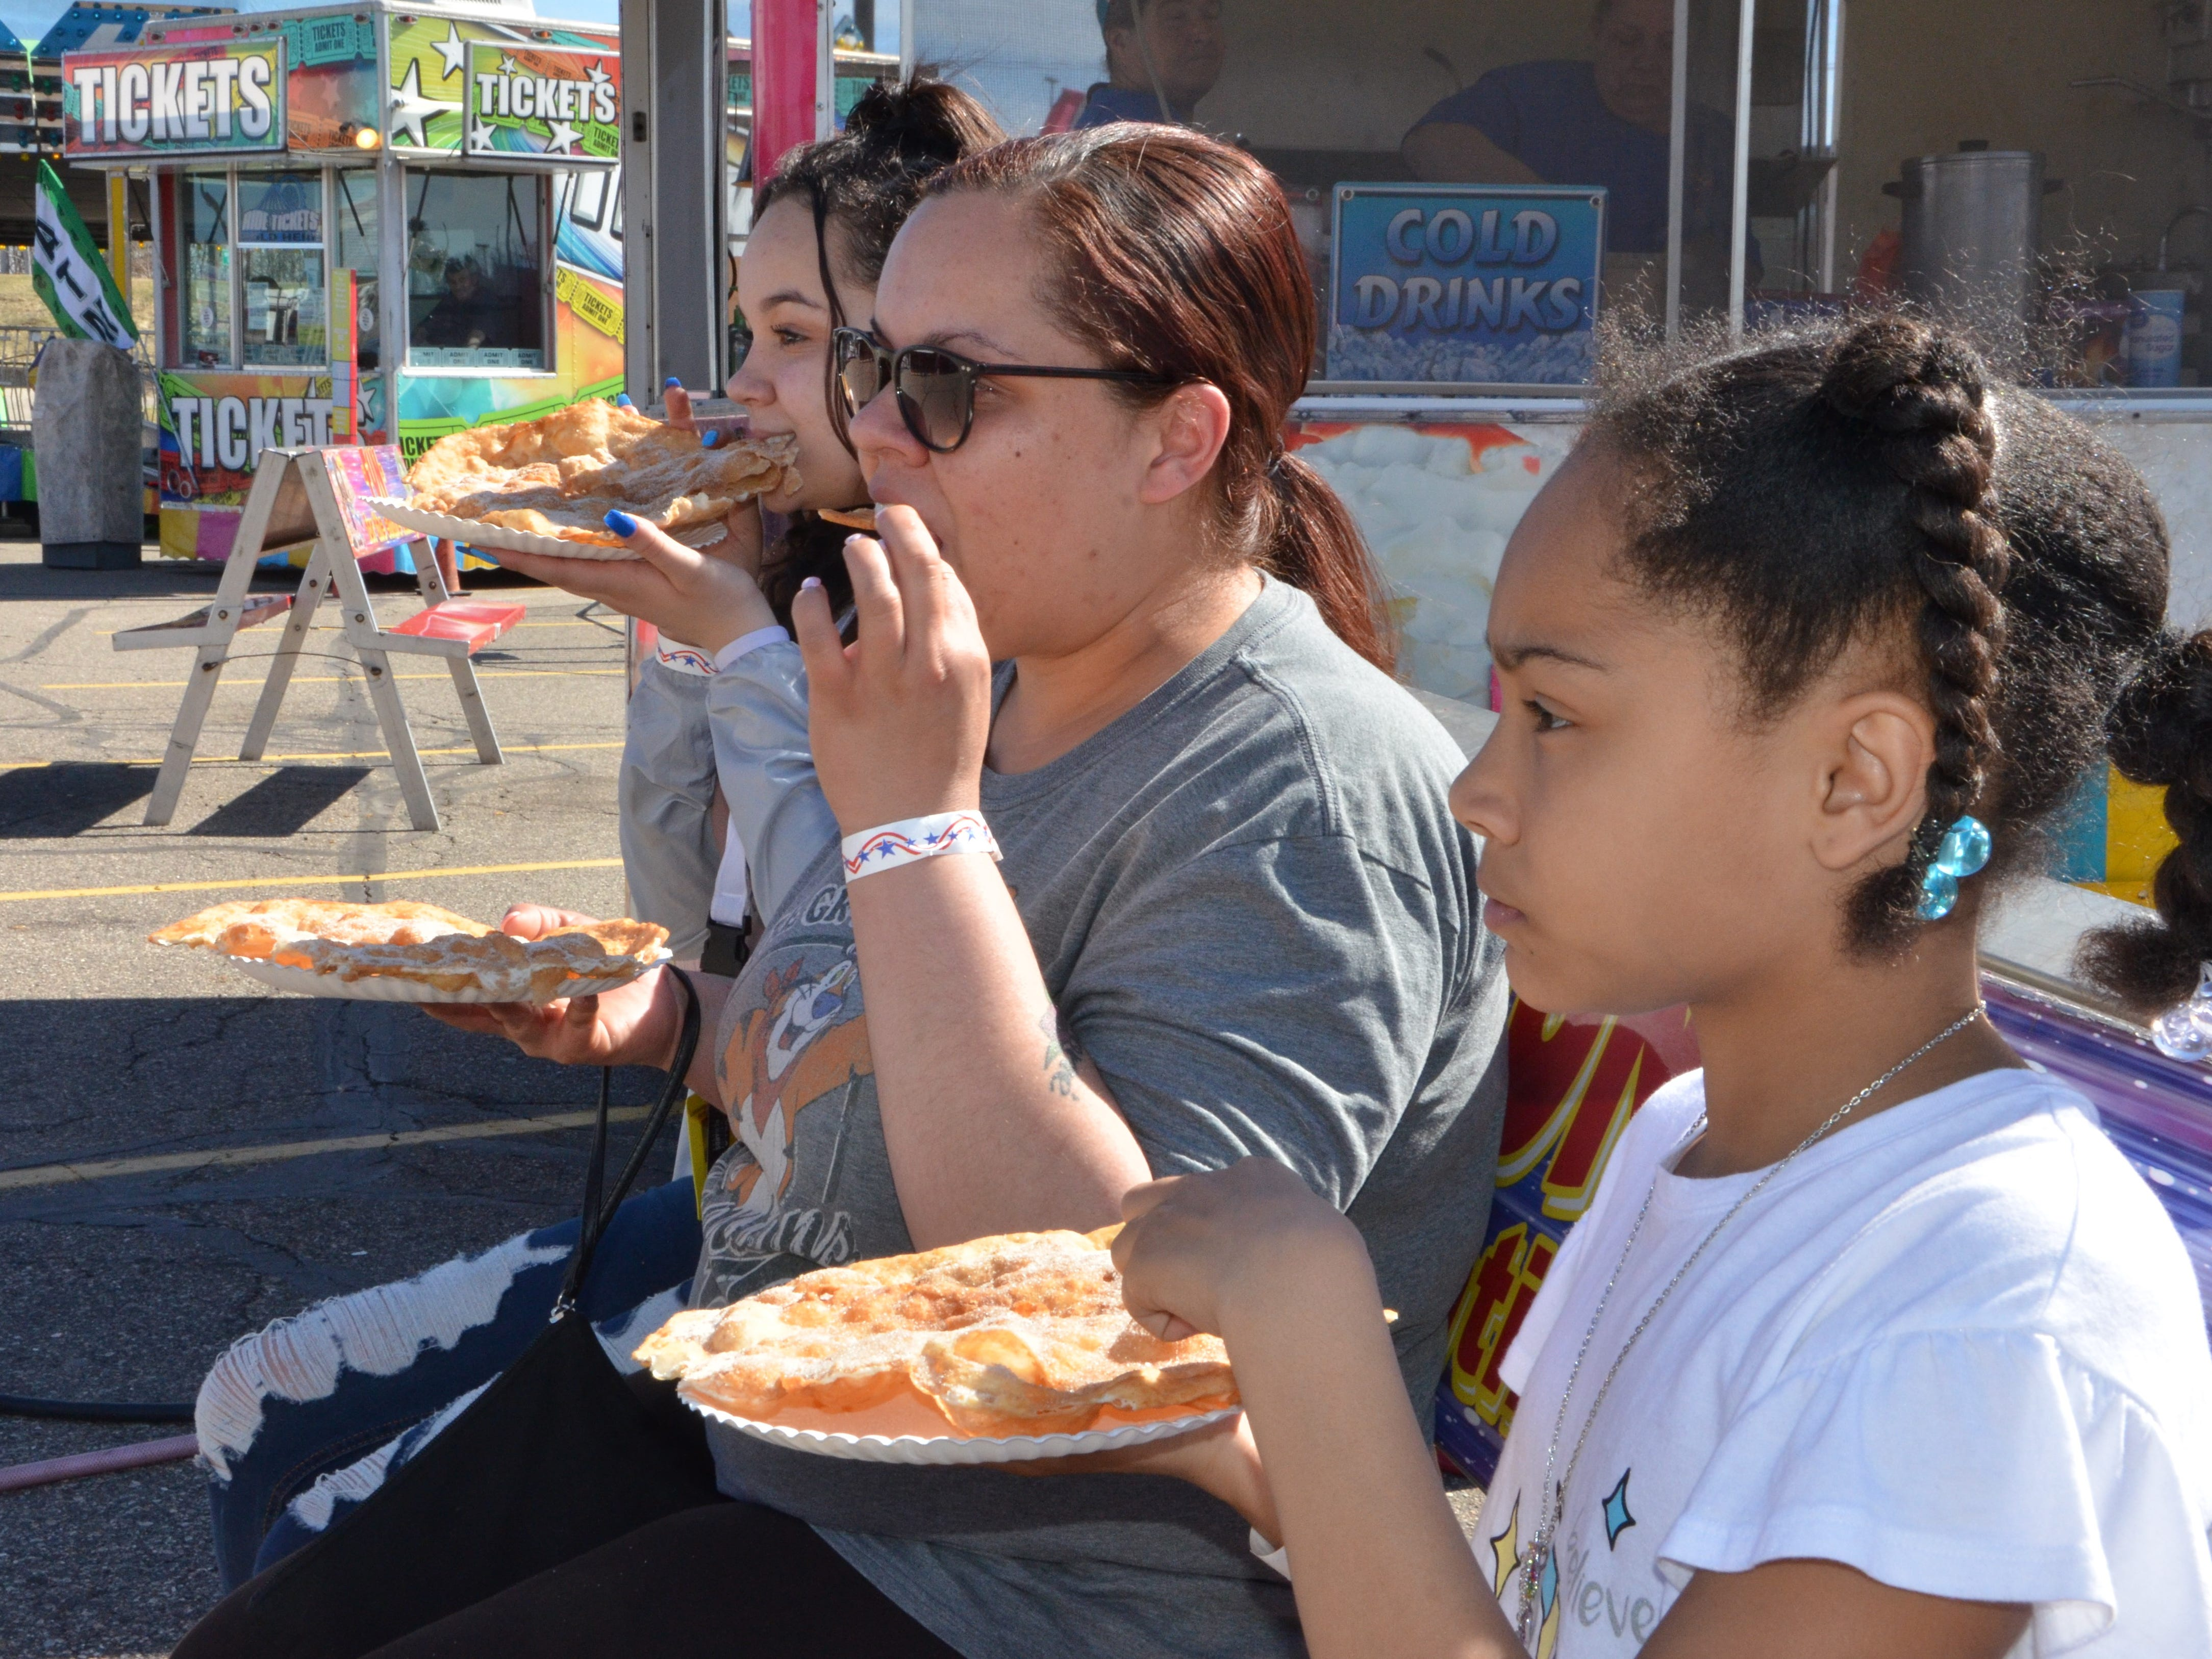 (L-R) Dan'nica Phelps, Teone Phelps and Kamone Phelps enjoy elephant ears on a bench at the Family Fun Tyme Amusements in the parking lot of Lakeview Square Mall.